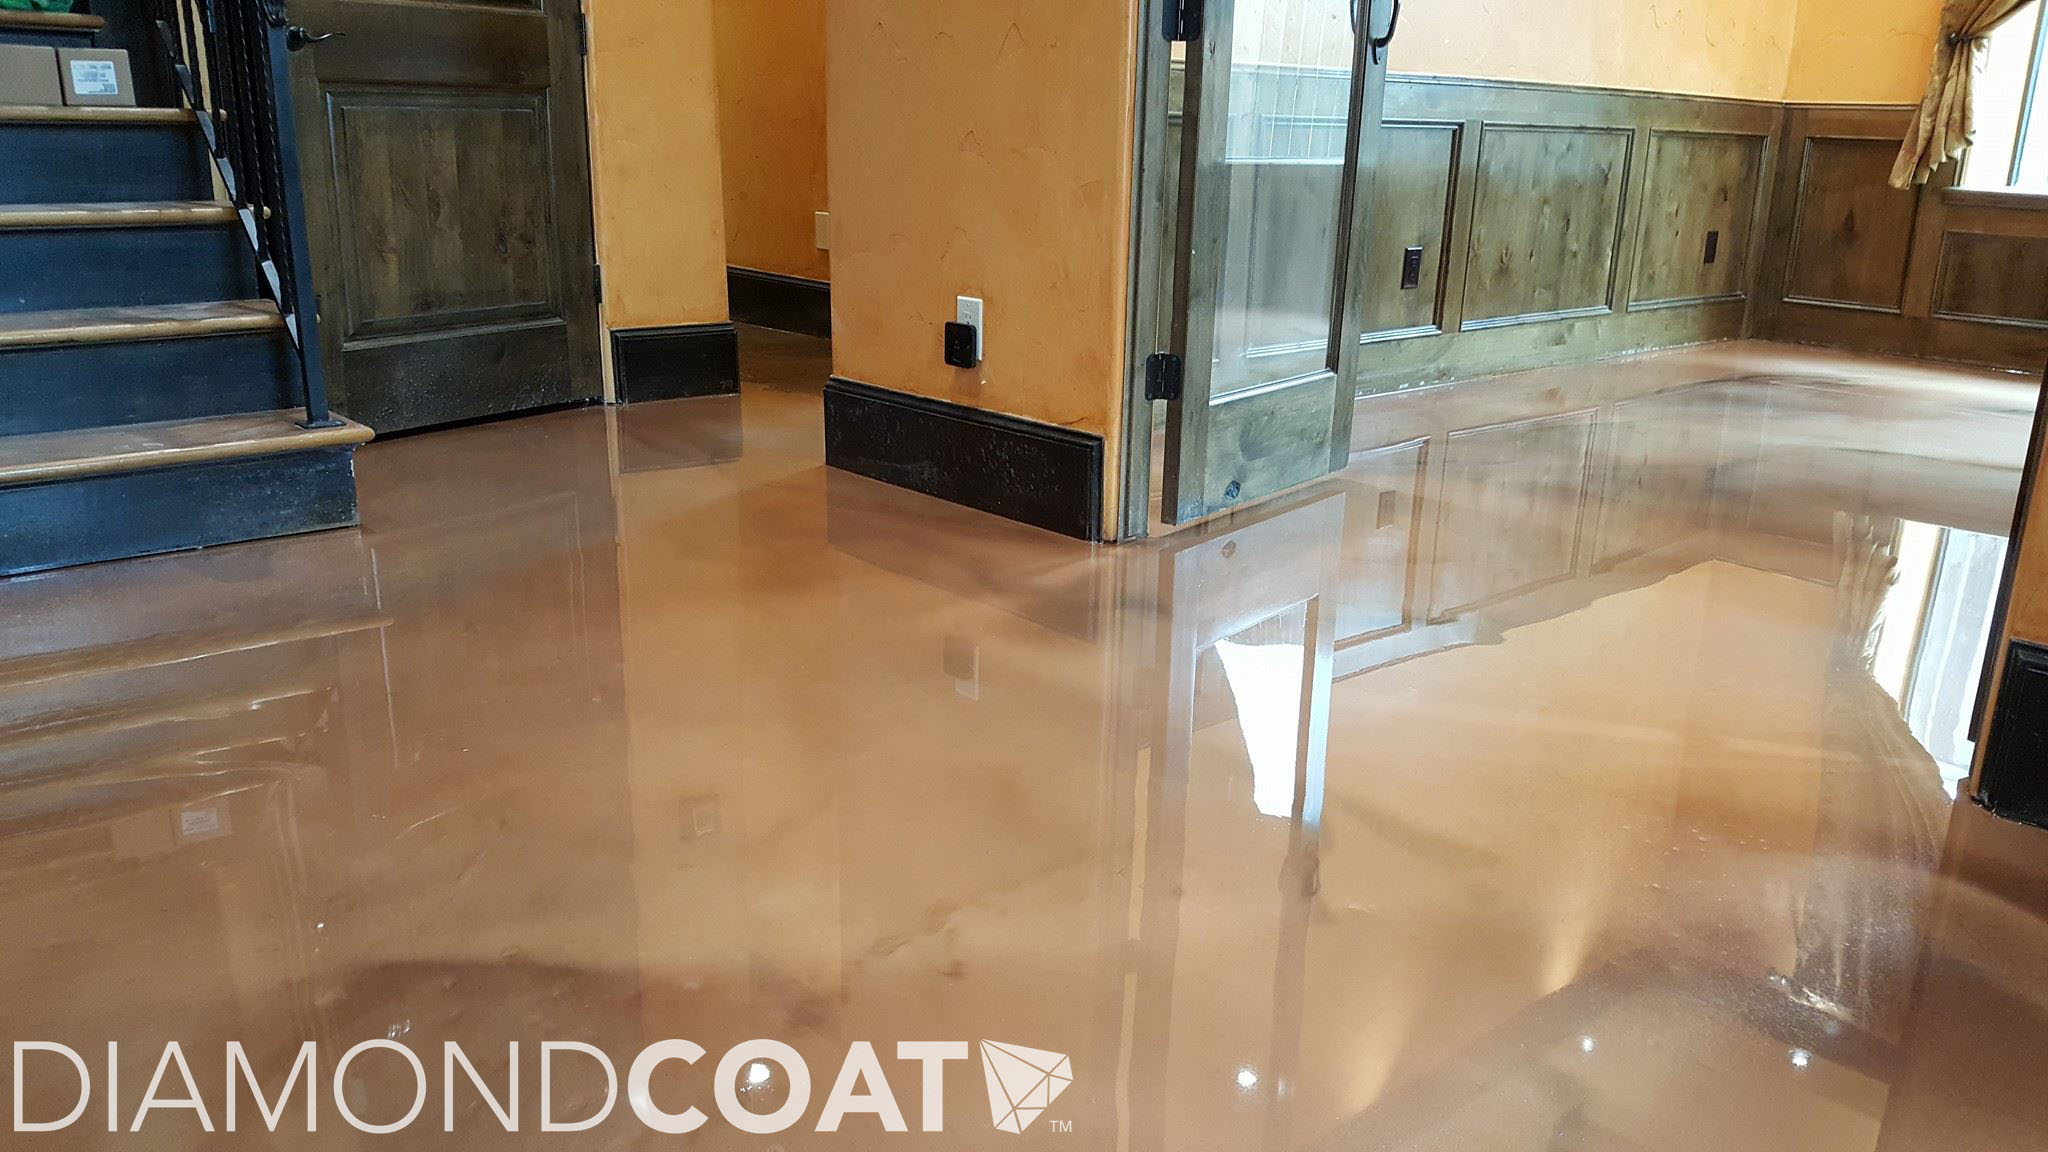 Epoxy is an extremely durable flooring material. Traditionally epoxy has been used in the garage and has only recently been introduced into the home.